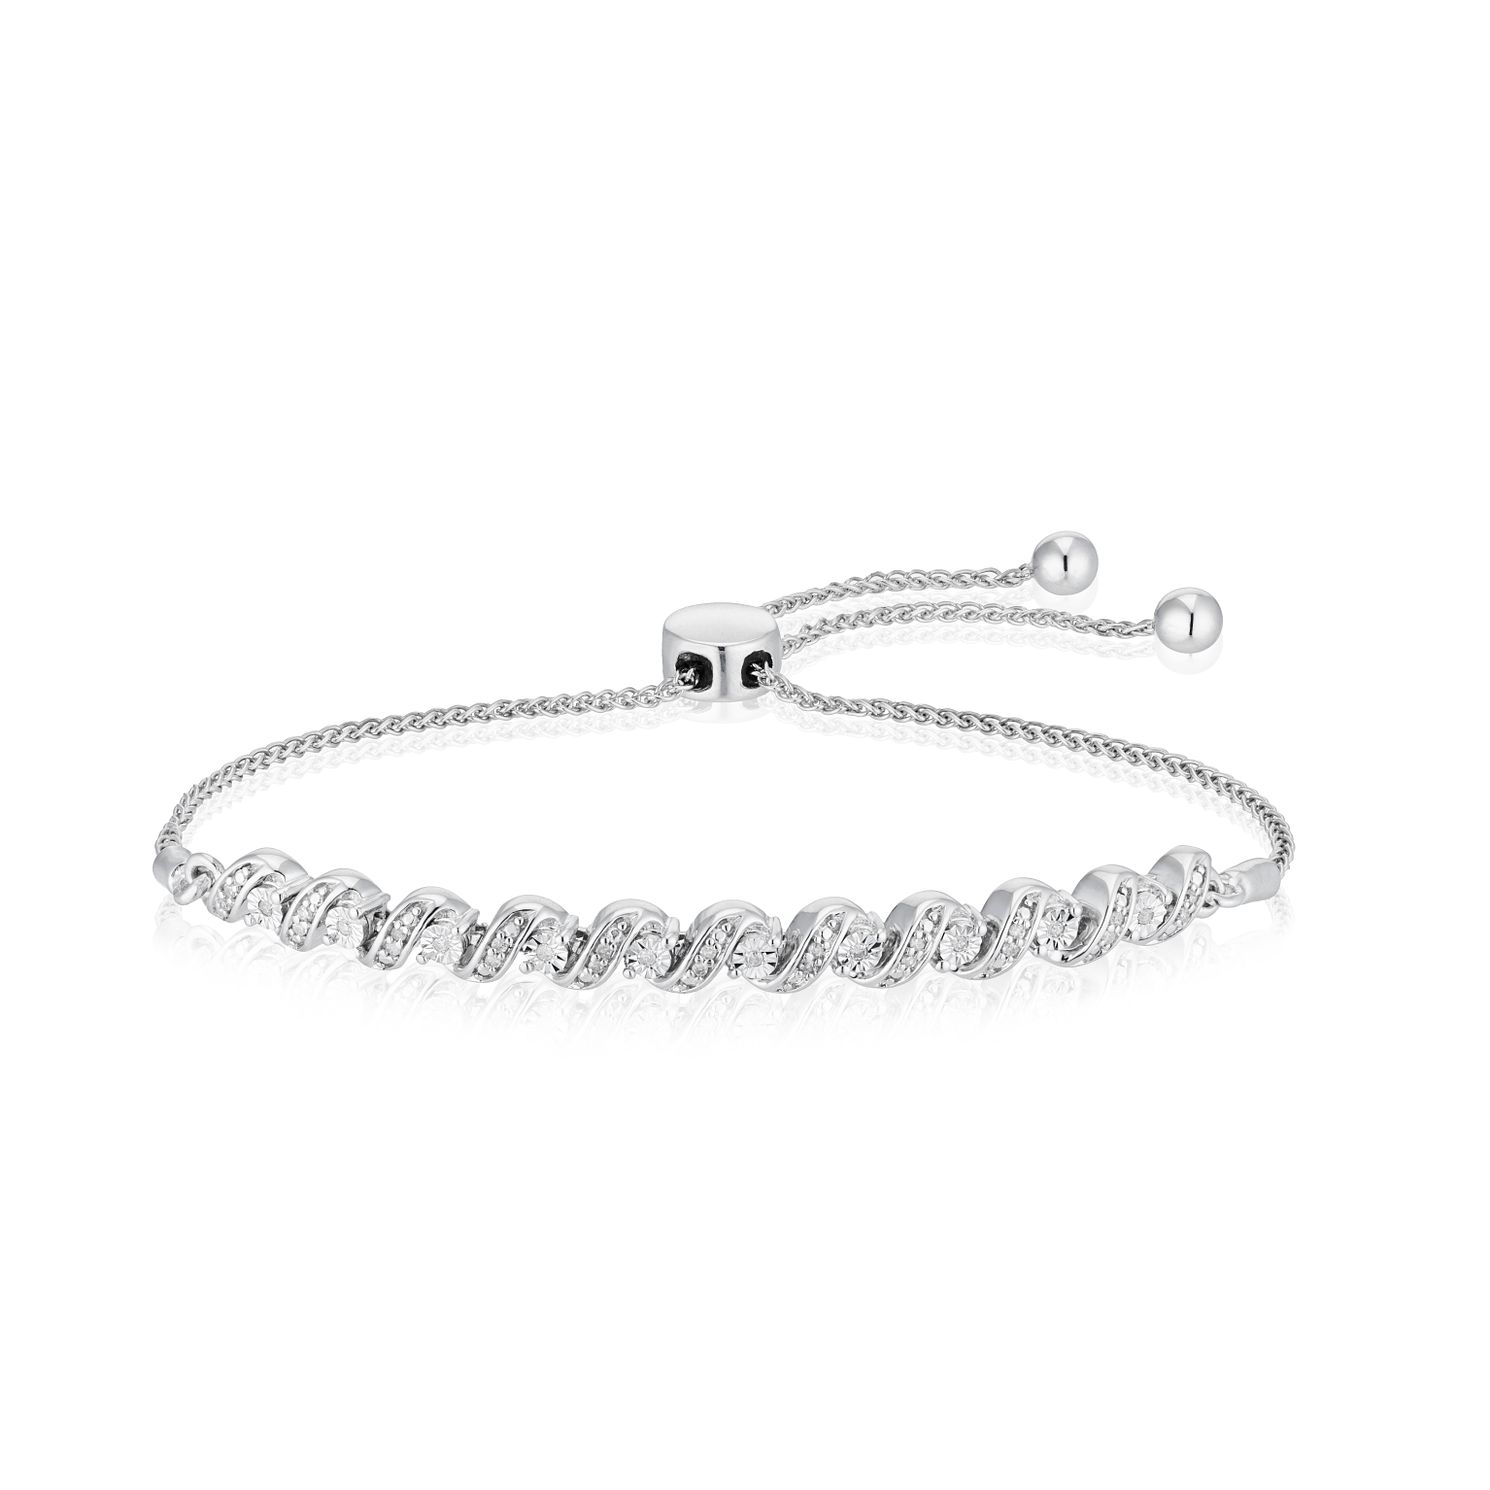 Silver 0.10ct Diamond Twist Bolo Bracelet - Product number 4685199